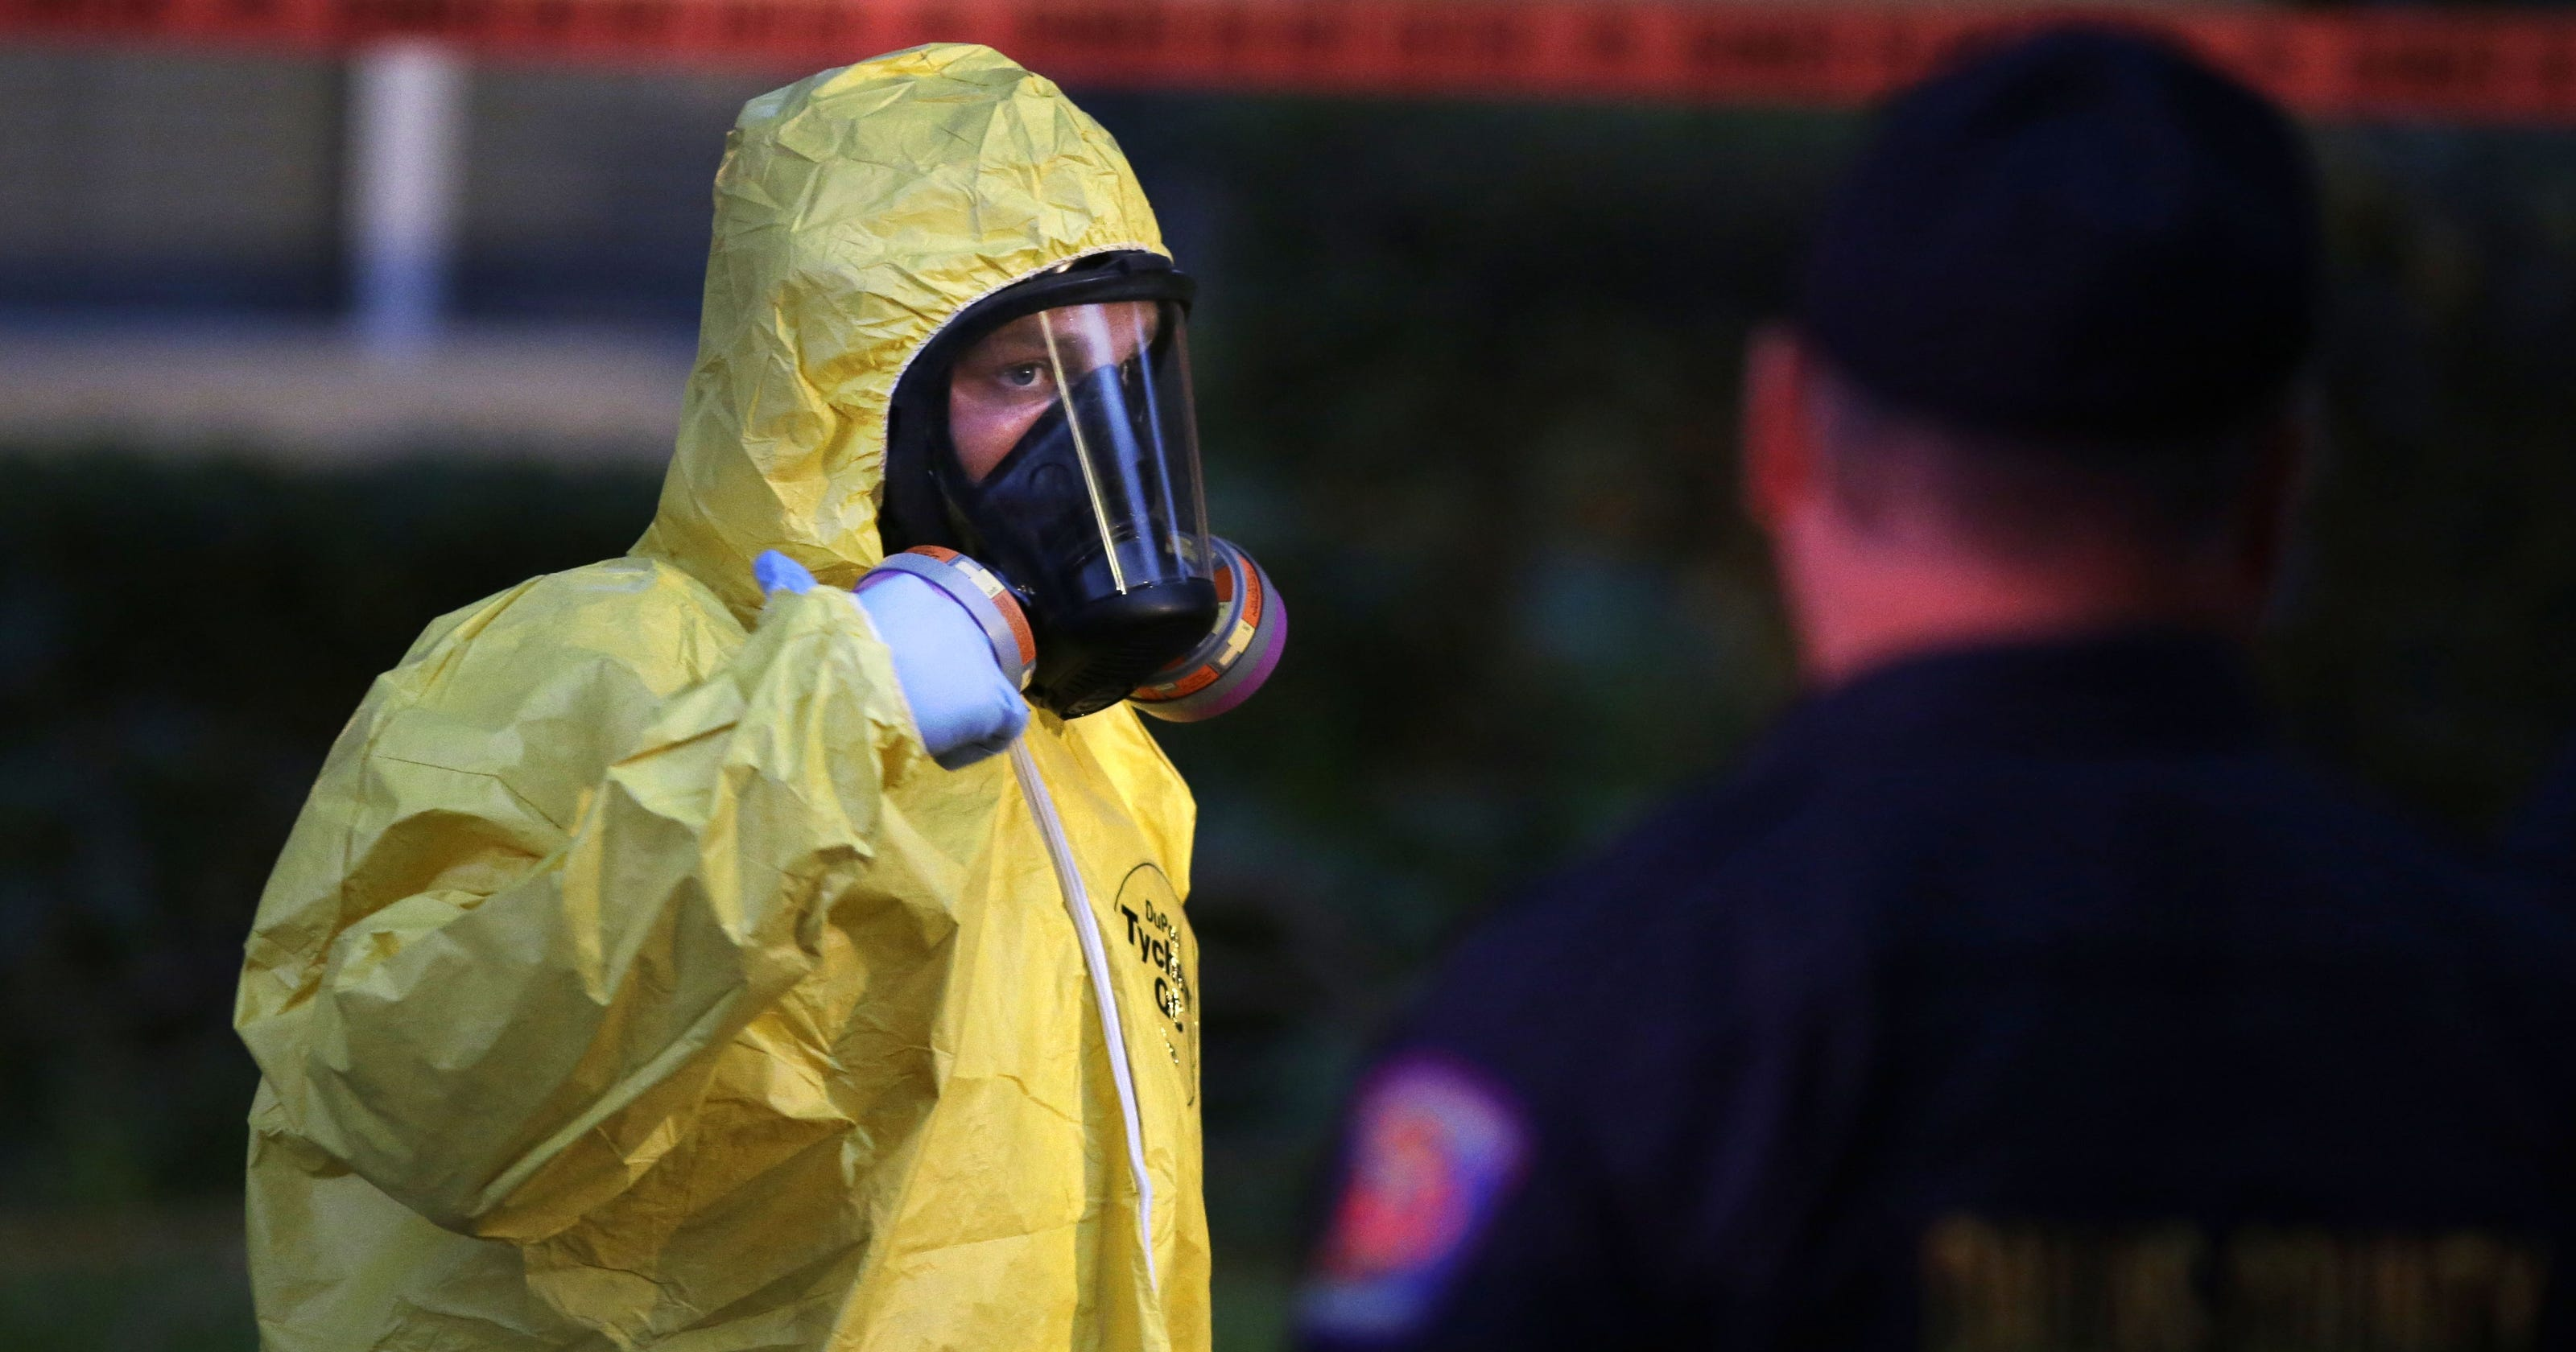 Ebola: Perspective urged as Lower Hudson Valley fear factor grows